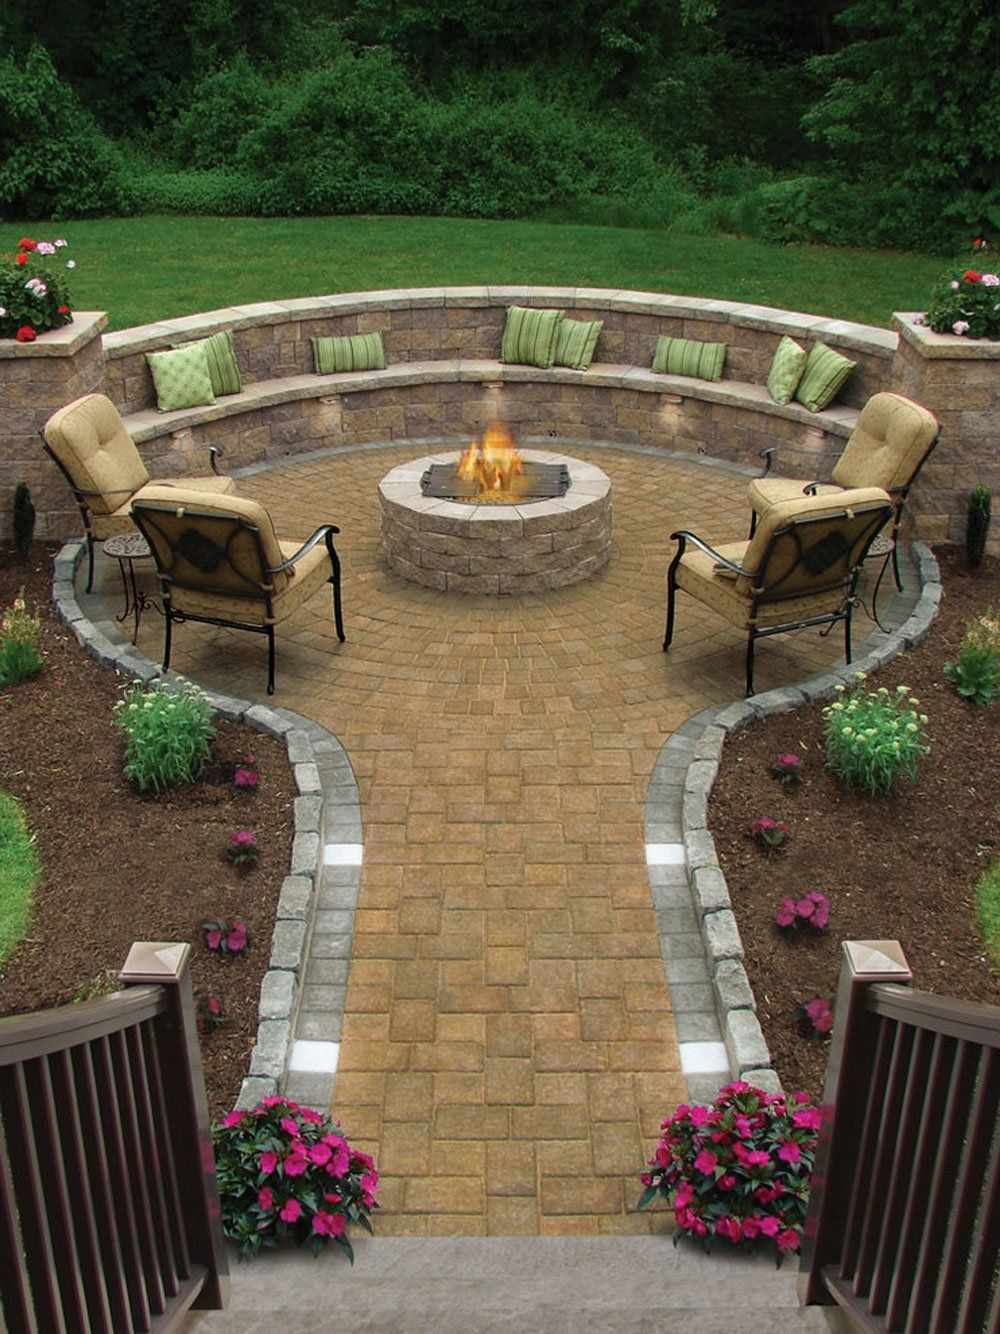 Beautiful 17 Of The Most Amazing Seating Area Around The Fire Pit Ever in Backyard Landscaping Ideas With Fire Pit